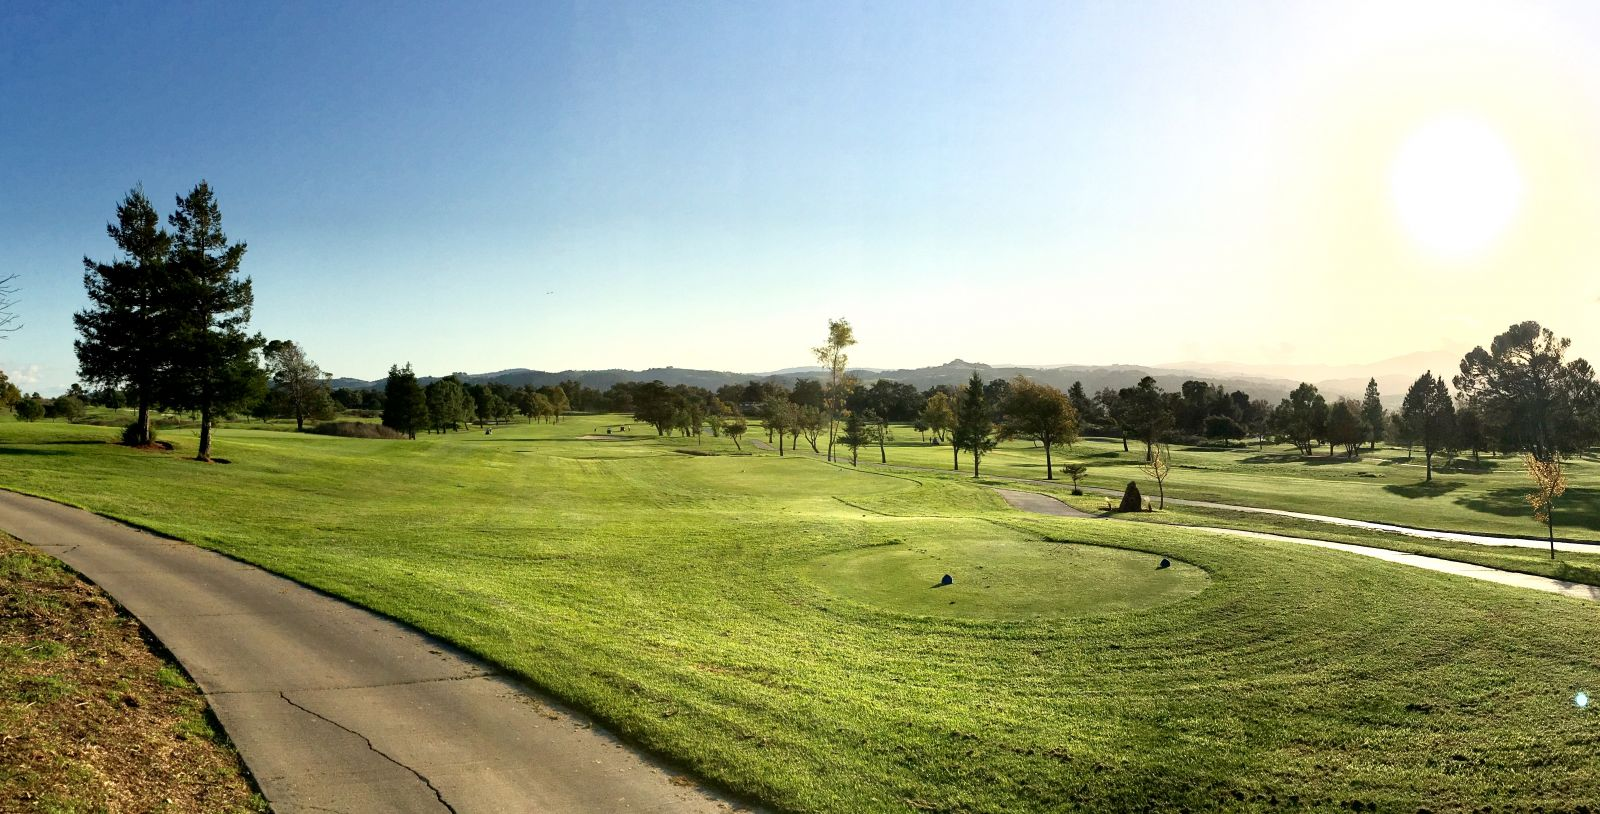 Sun starting to set at Coyote Creek Golf Club